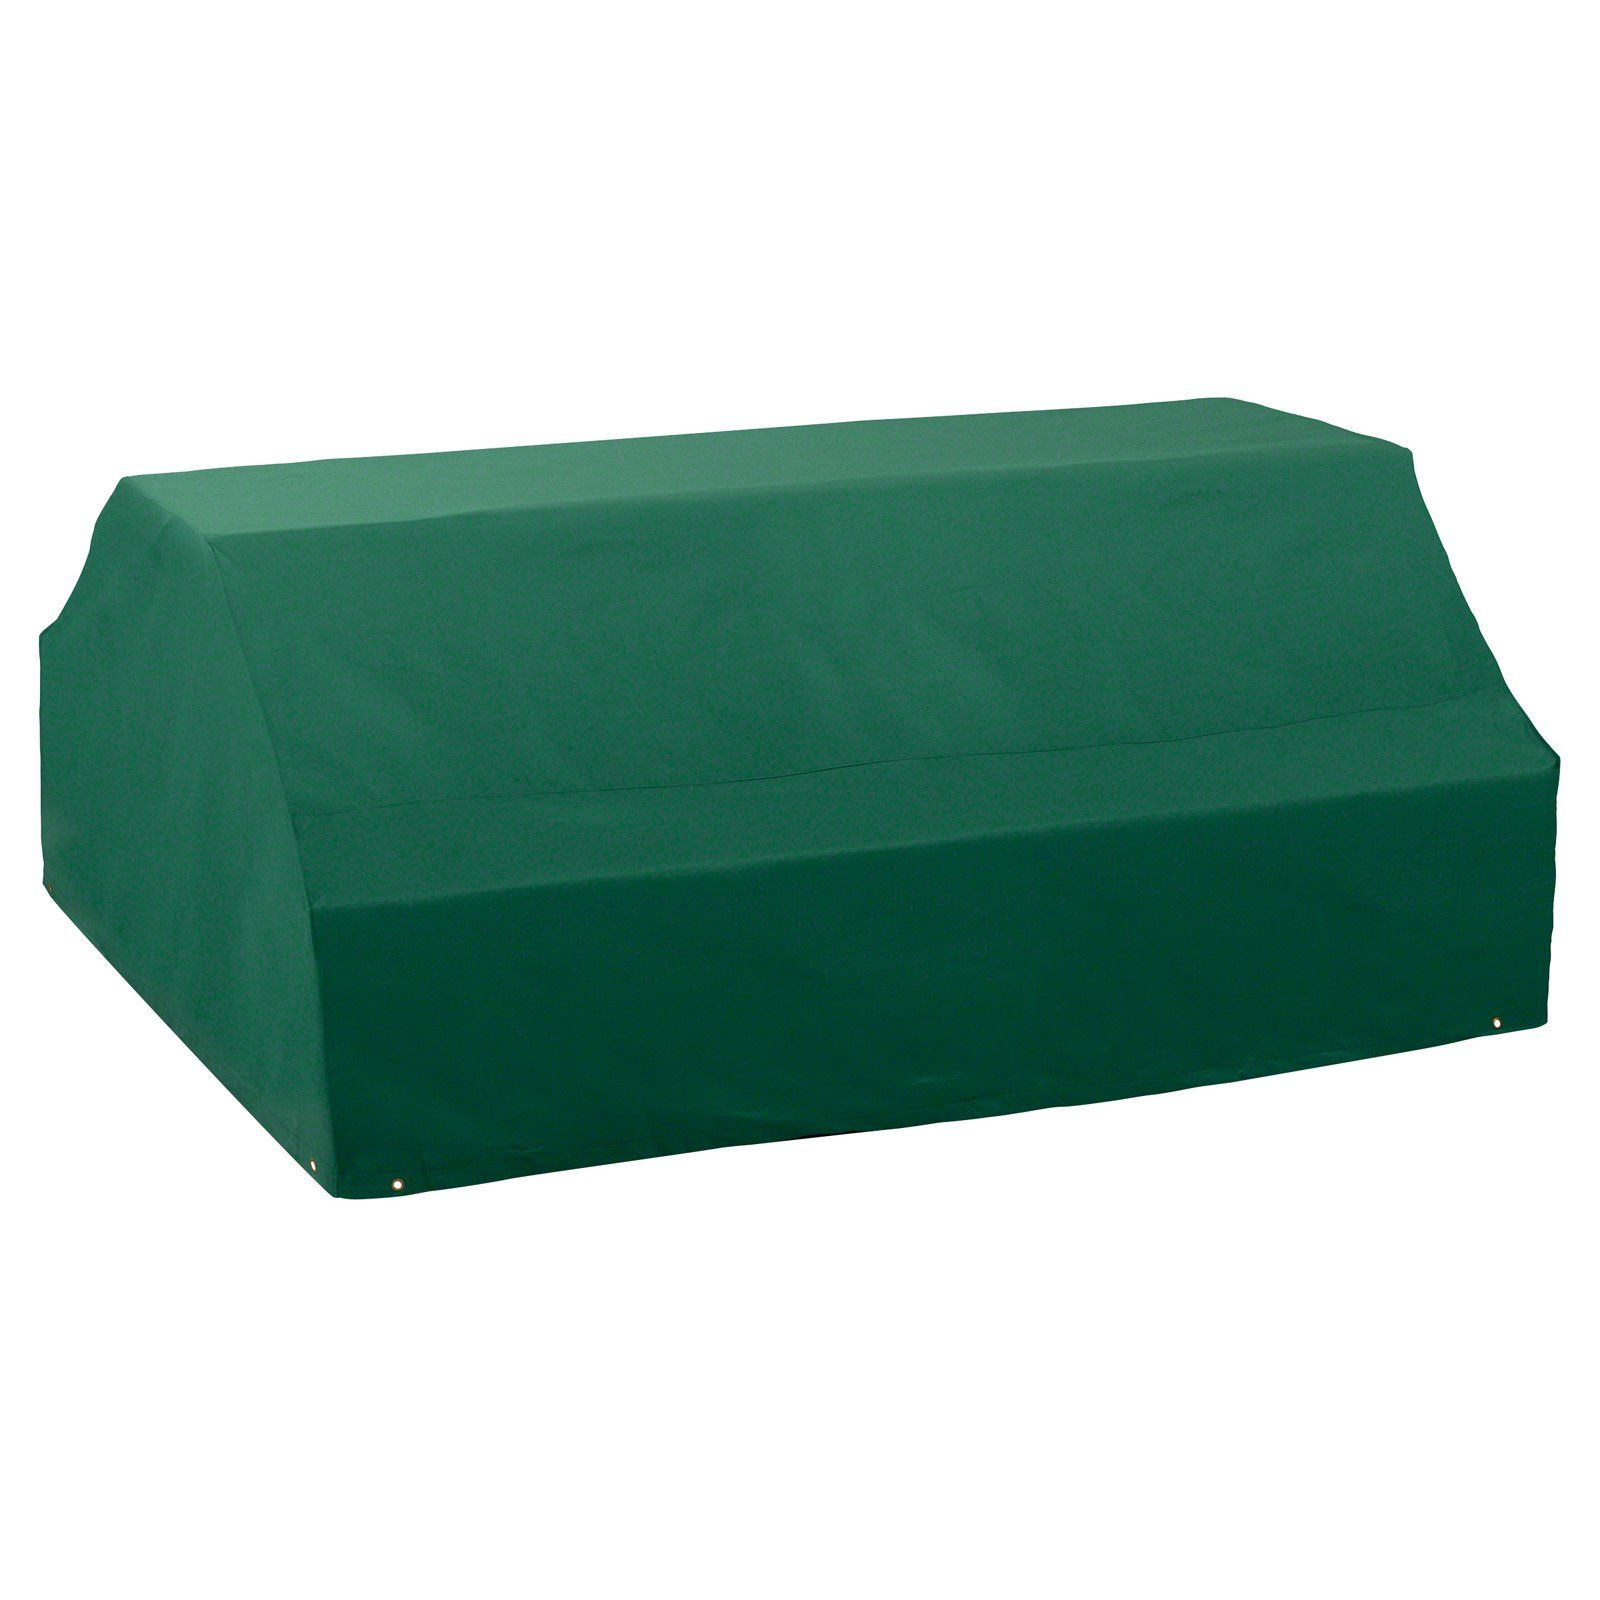 Atrium Picnic Table Cover 55 441 011101 11 Products with proportions 1600 X 1600